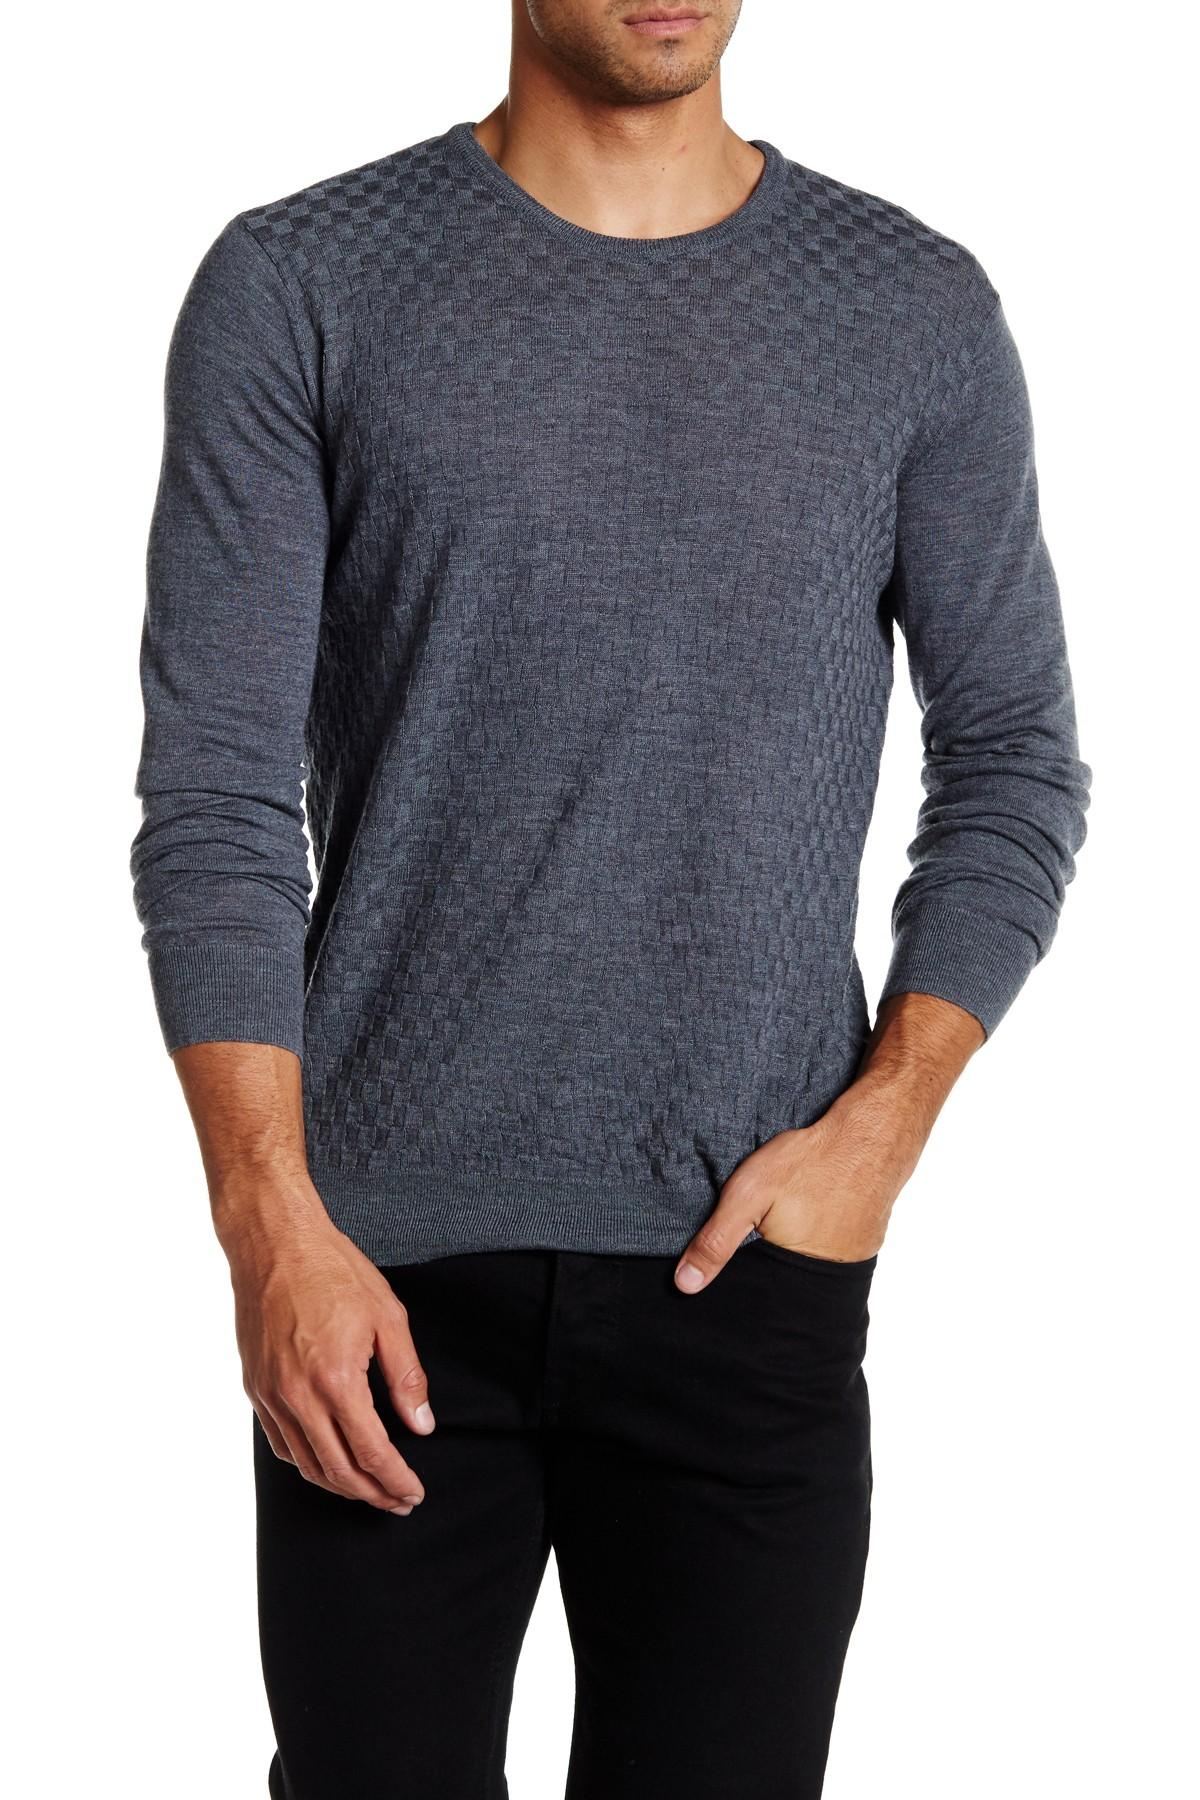 Slate And Stone Clothing : Slate stone merino wool basket weave sweater in gray for